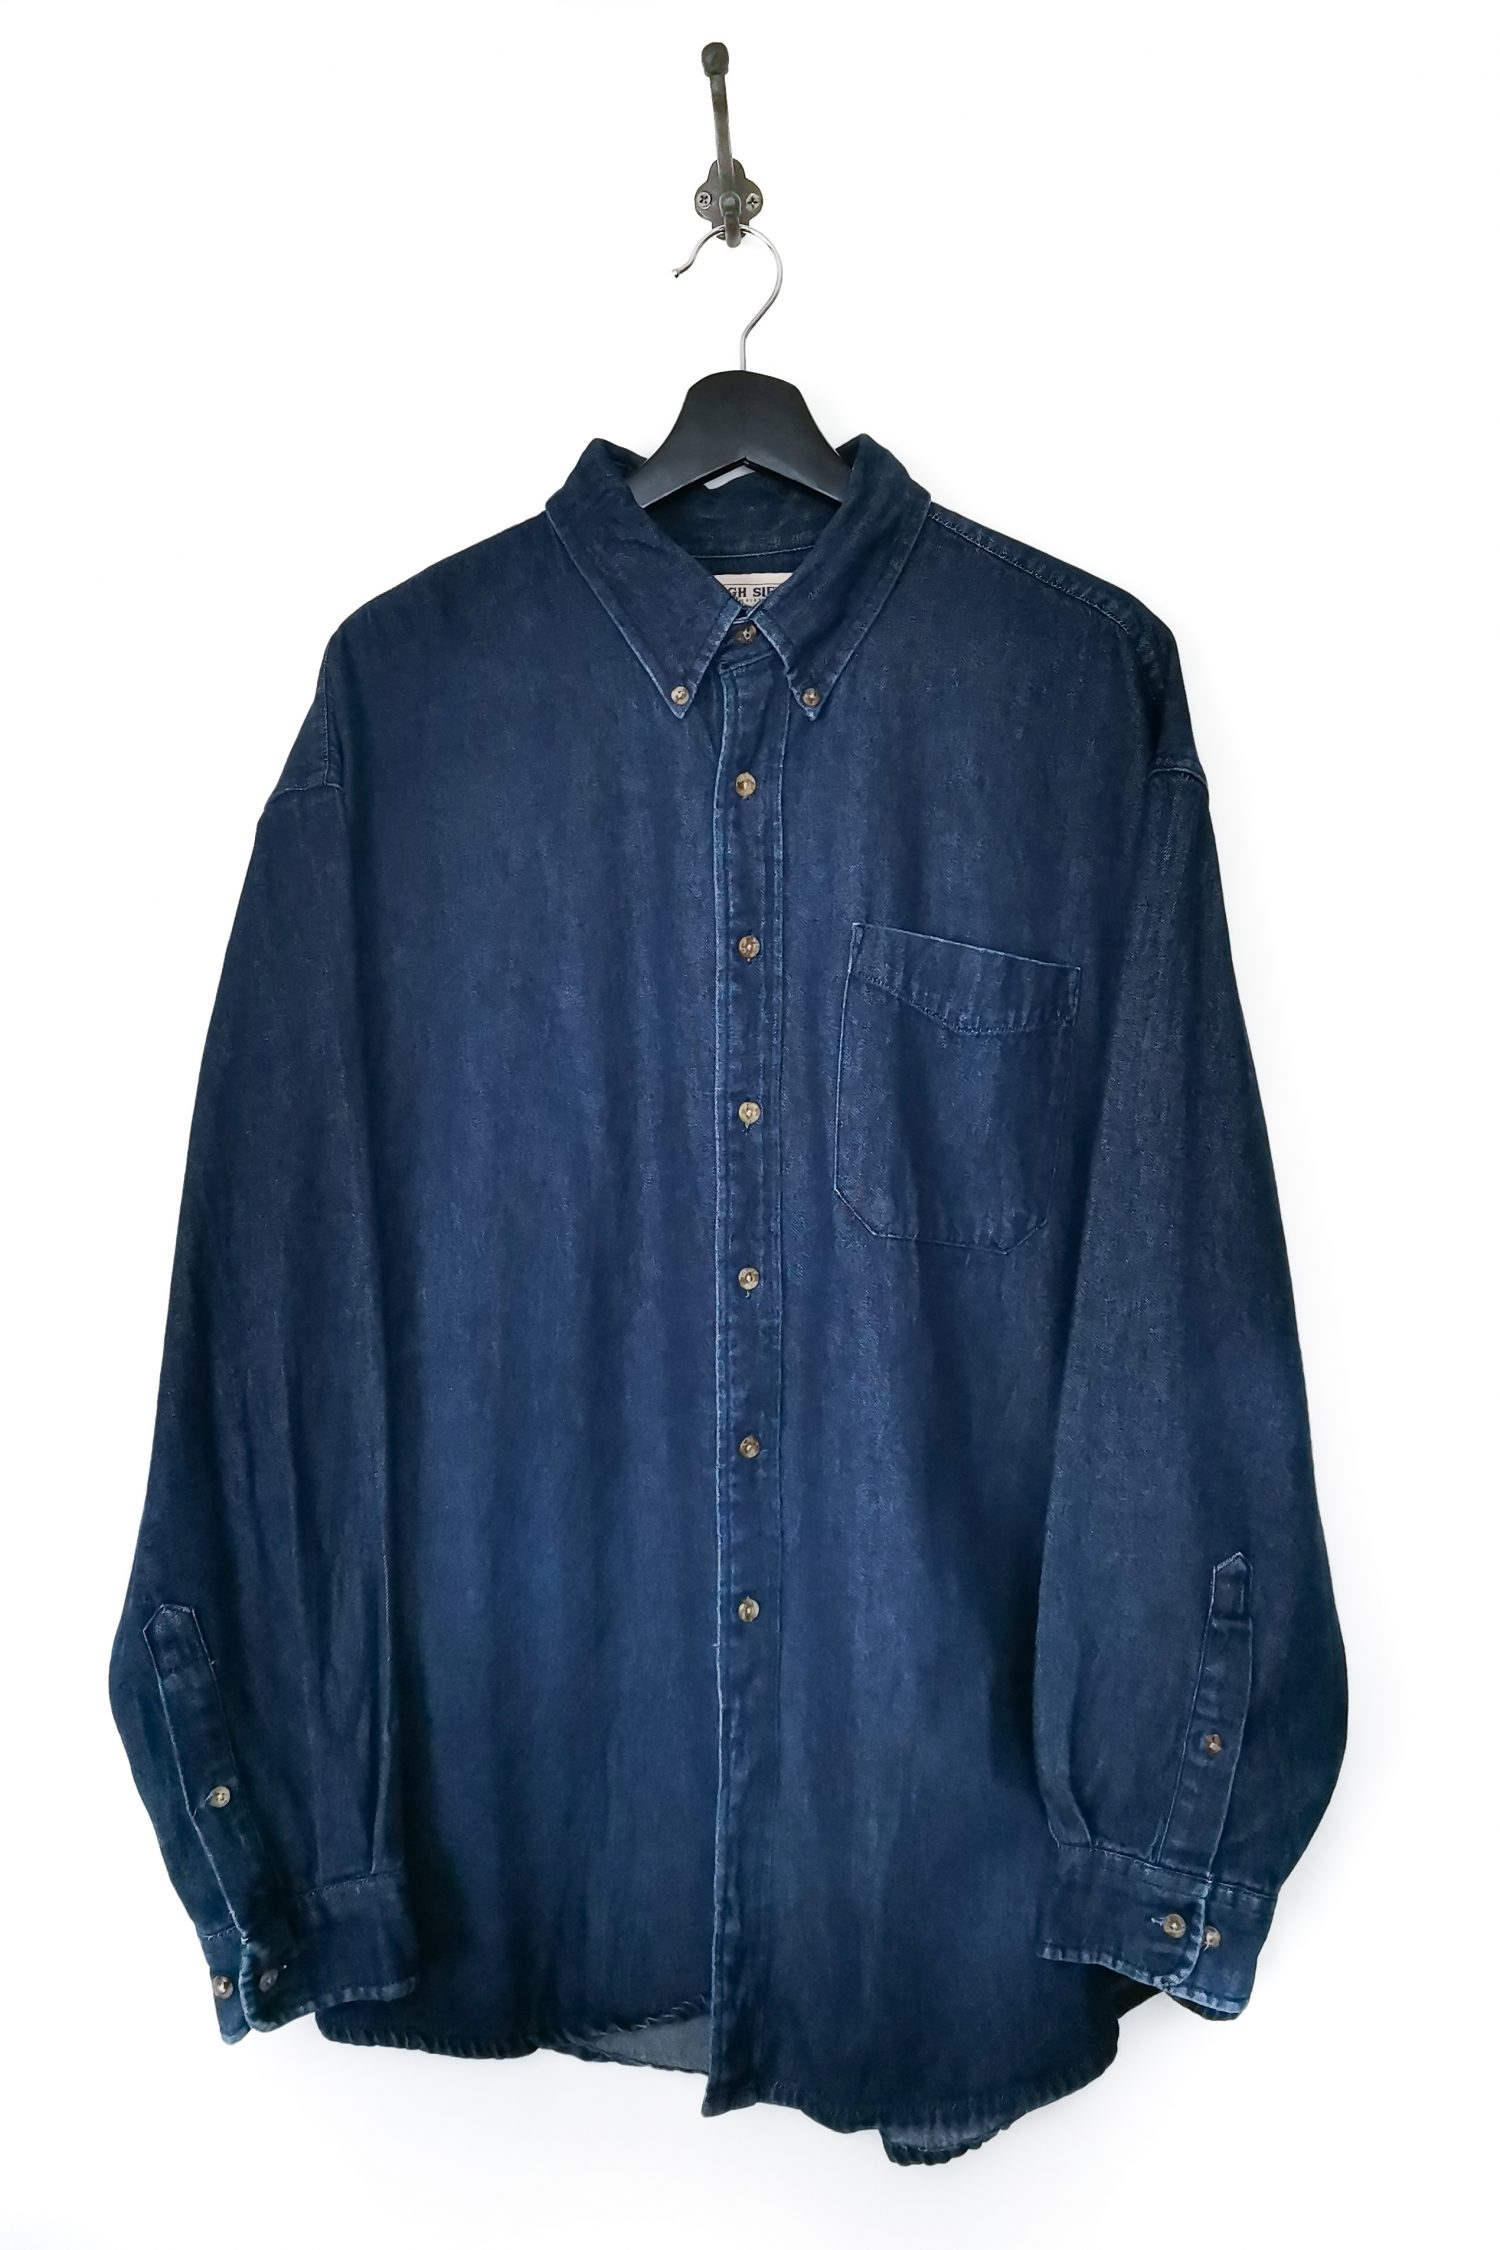 USED High Sierra Denim Shirt